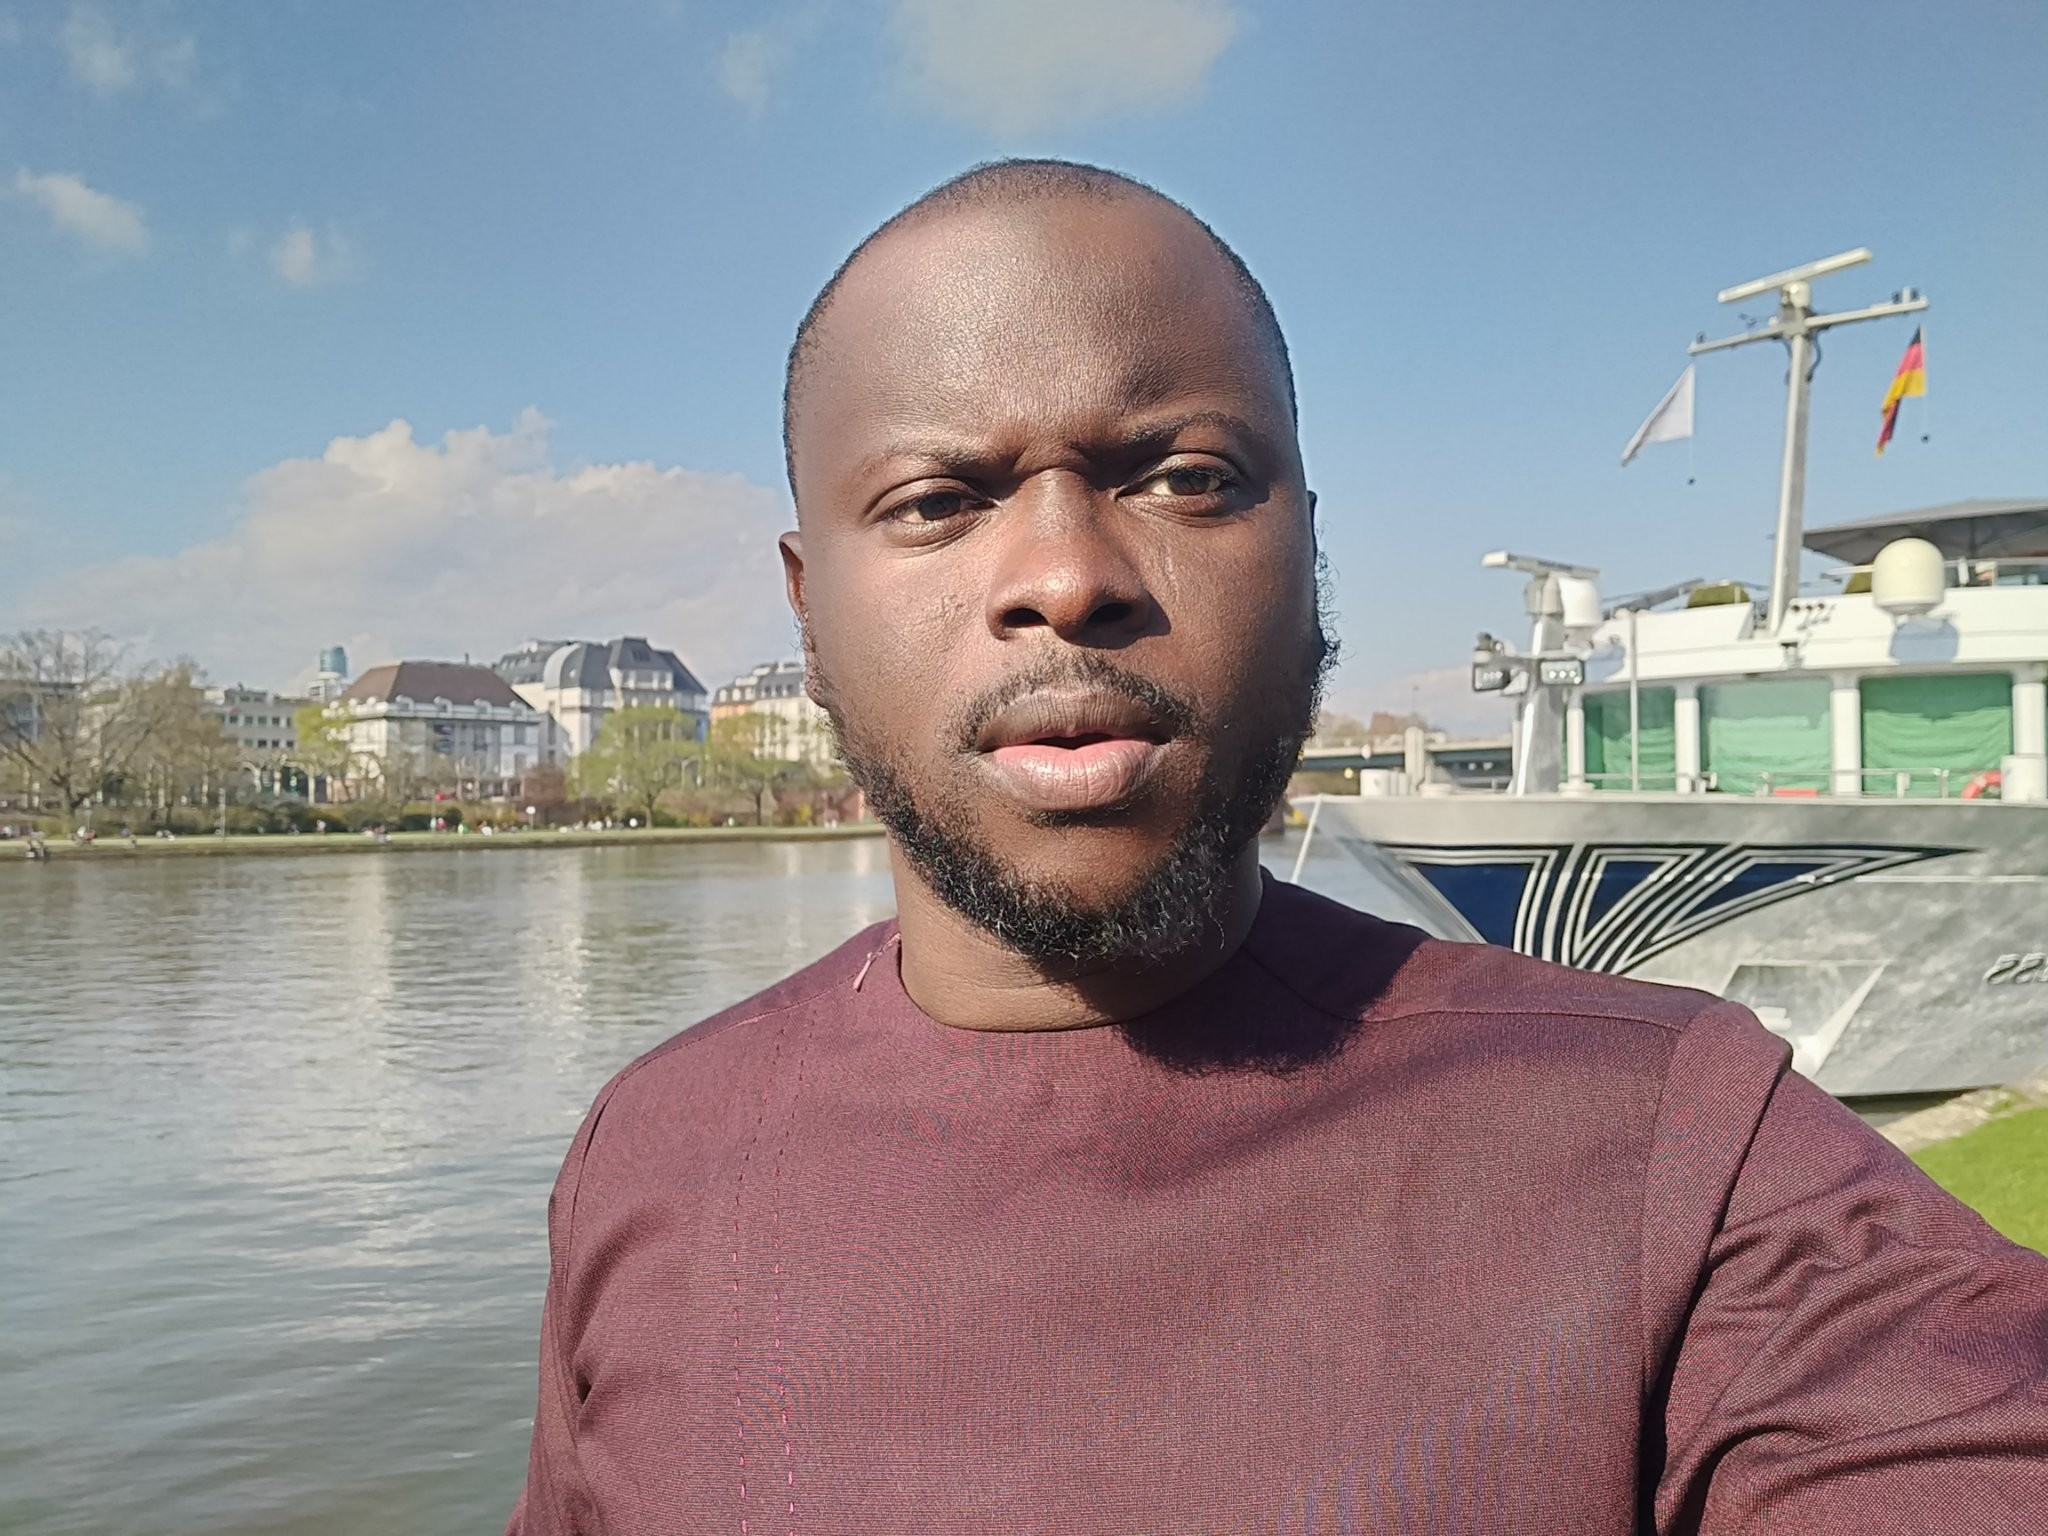 Nigerian man mocks Nigerian doctors after a German doctor took just two minutes to diagnose a problem that has bugged him for 15 years